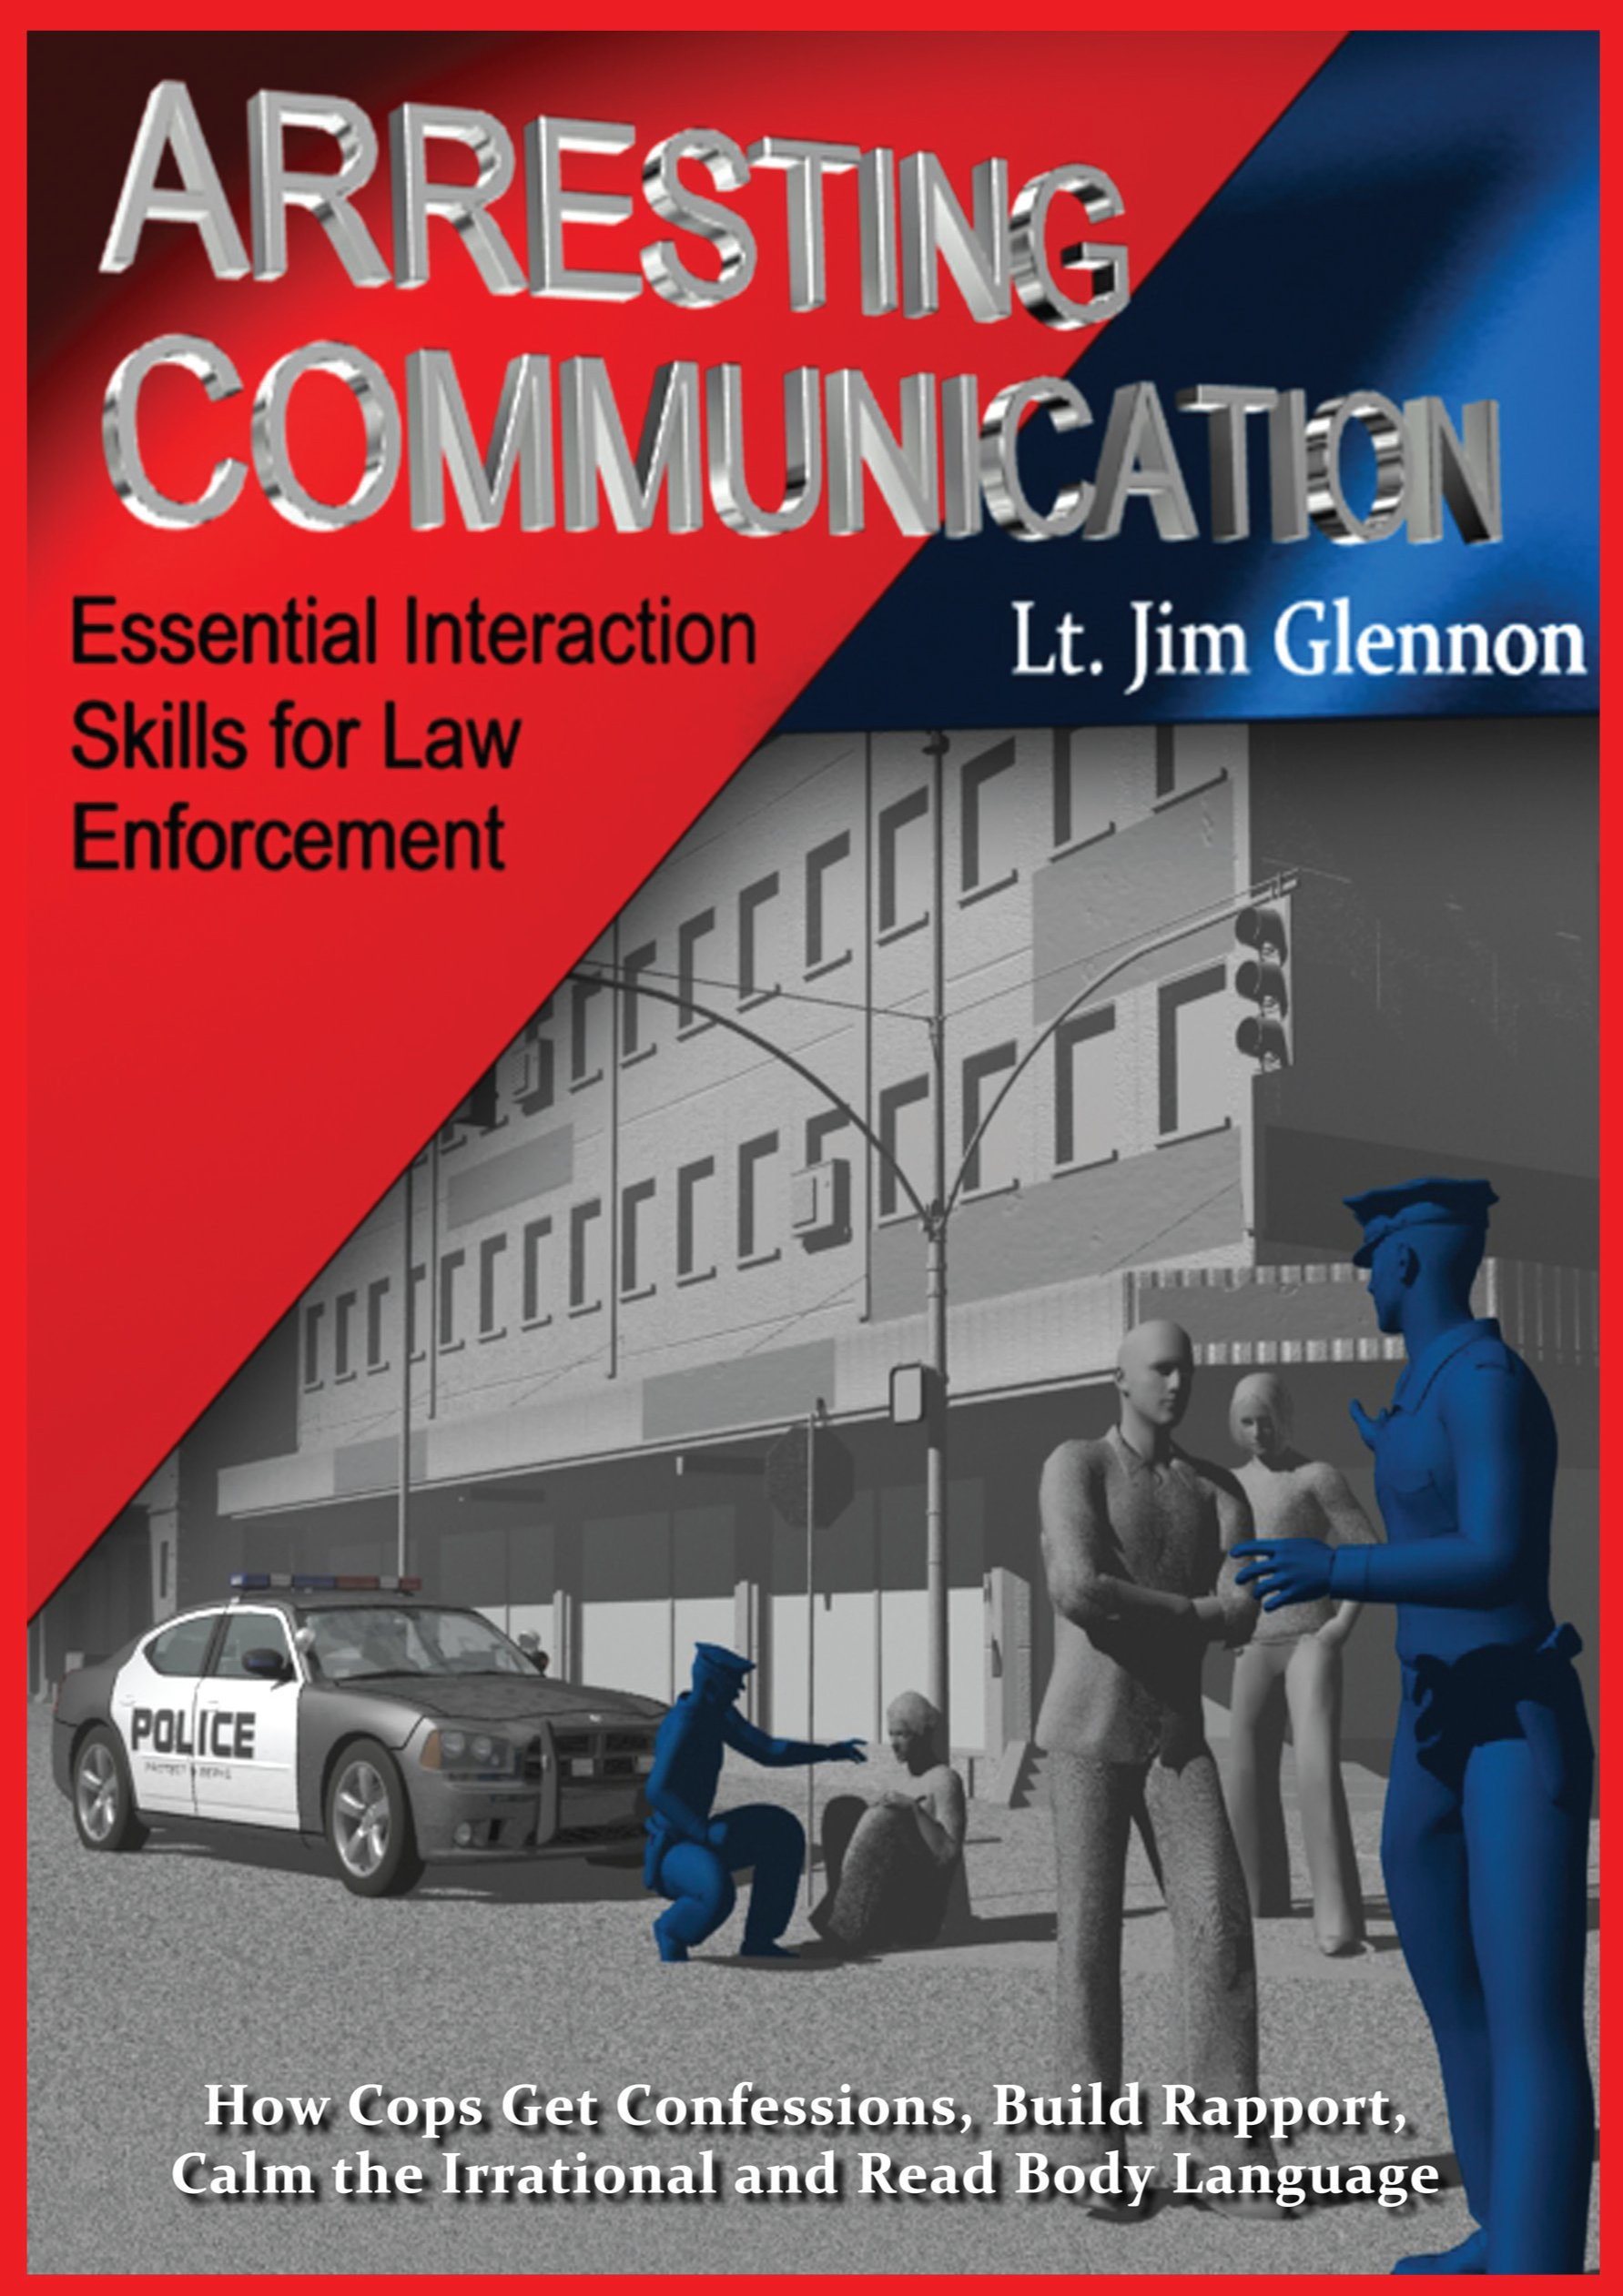 Arresting Communication: Essential Interaction Skills for Law Enforcement Paperback – 2010 Jim Glennon B00RWQKPMI